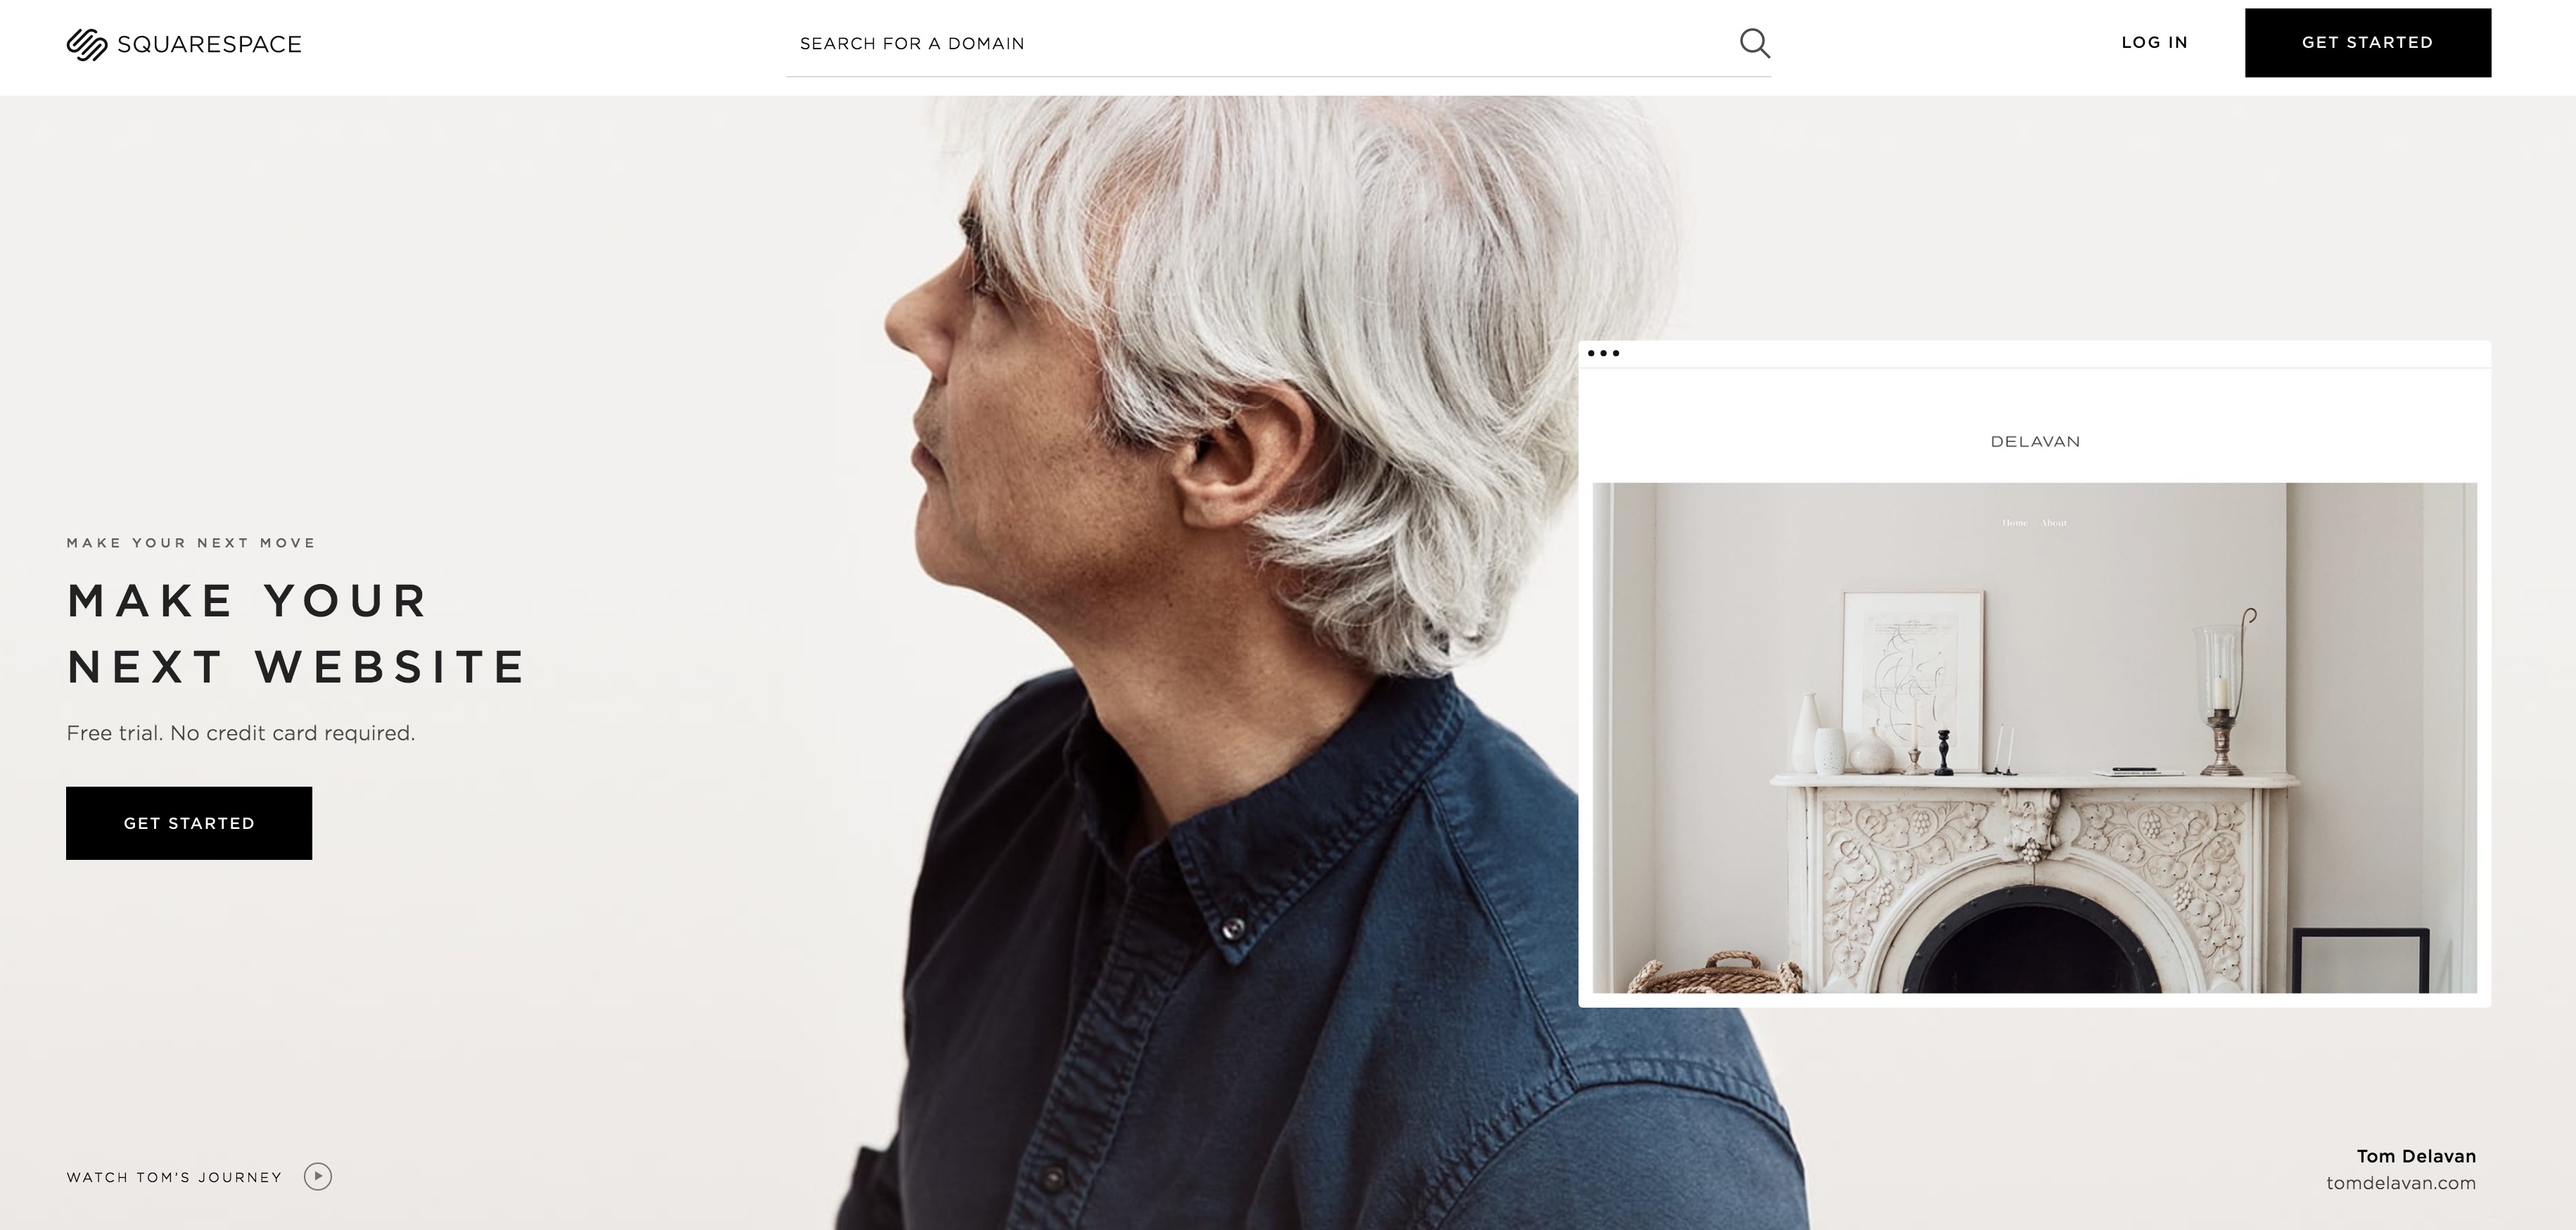 fdc4ea85197 Squarespace is recommended for eCommerces in many different fields because  it comes with strong selling capabilities. Some of its positive points  include ...